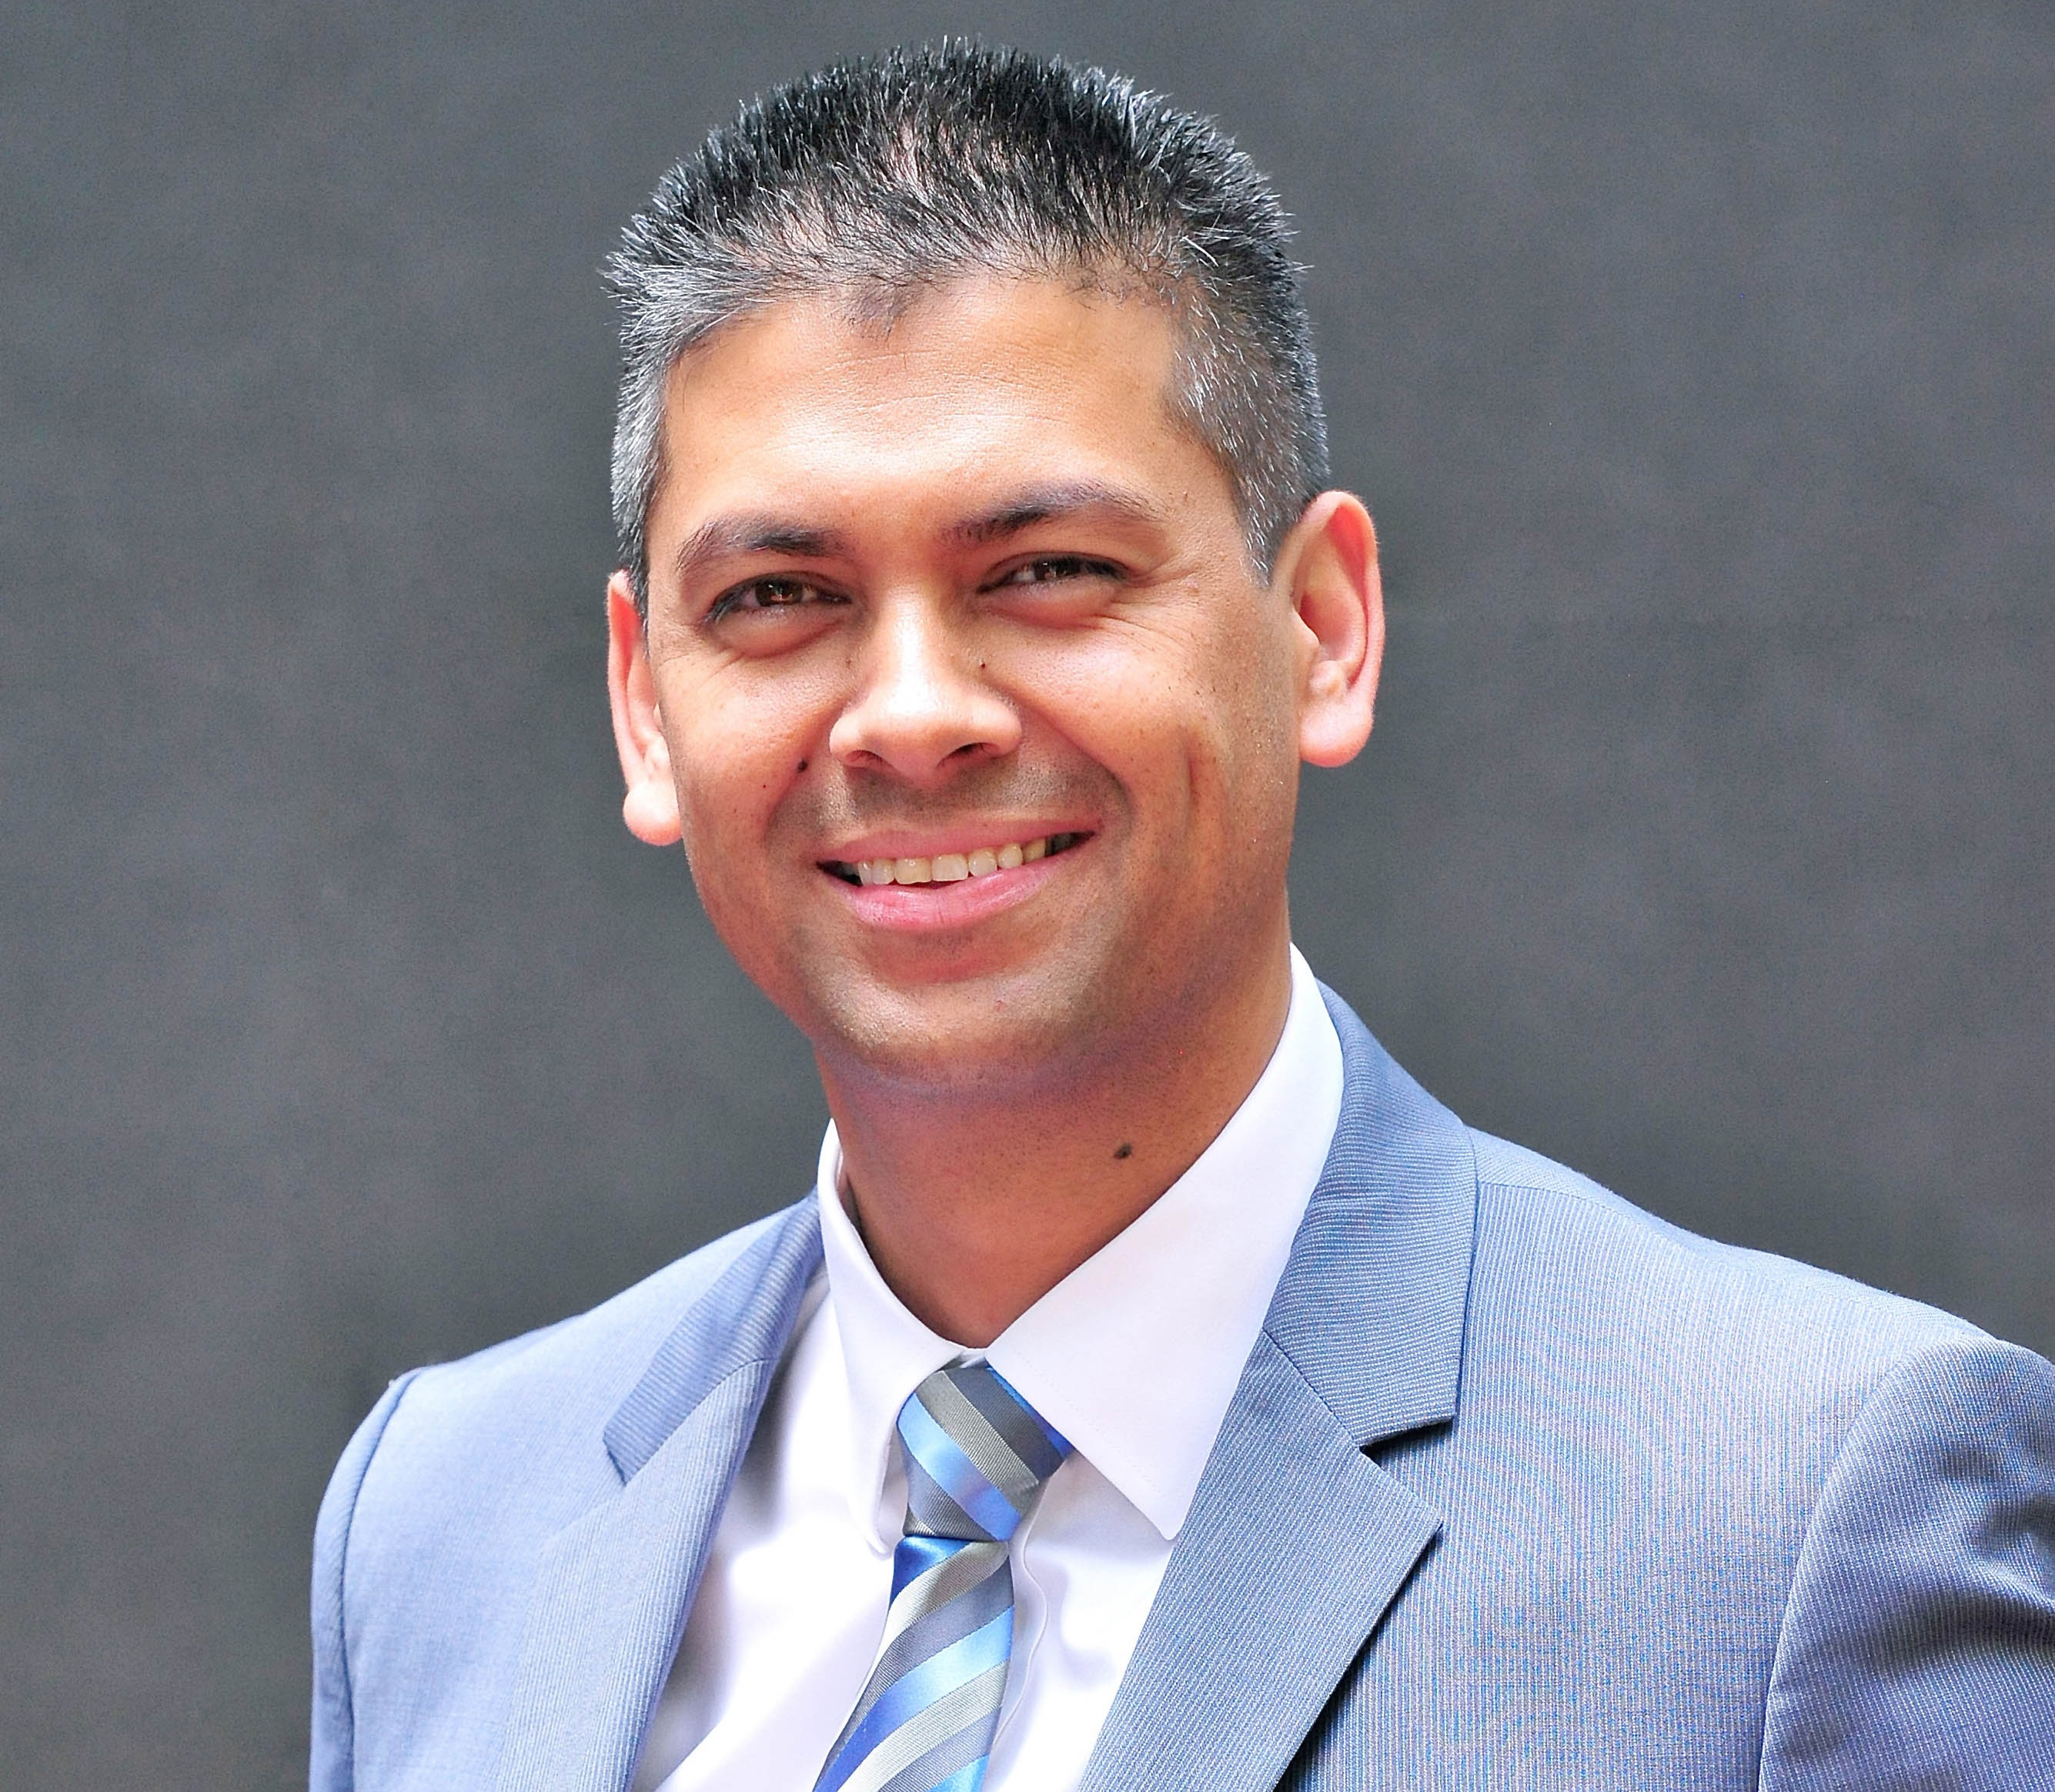 By Sandro Bucchianeri, Absa Group Chief Security Officer